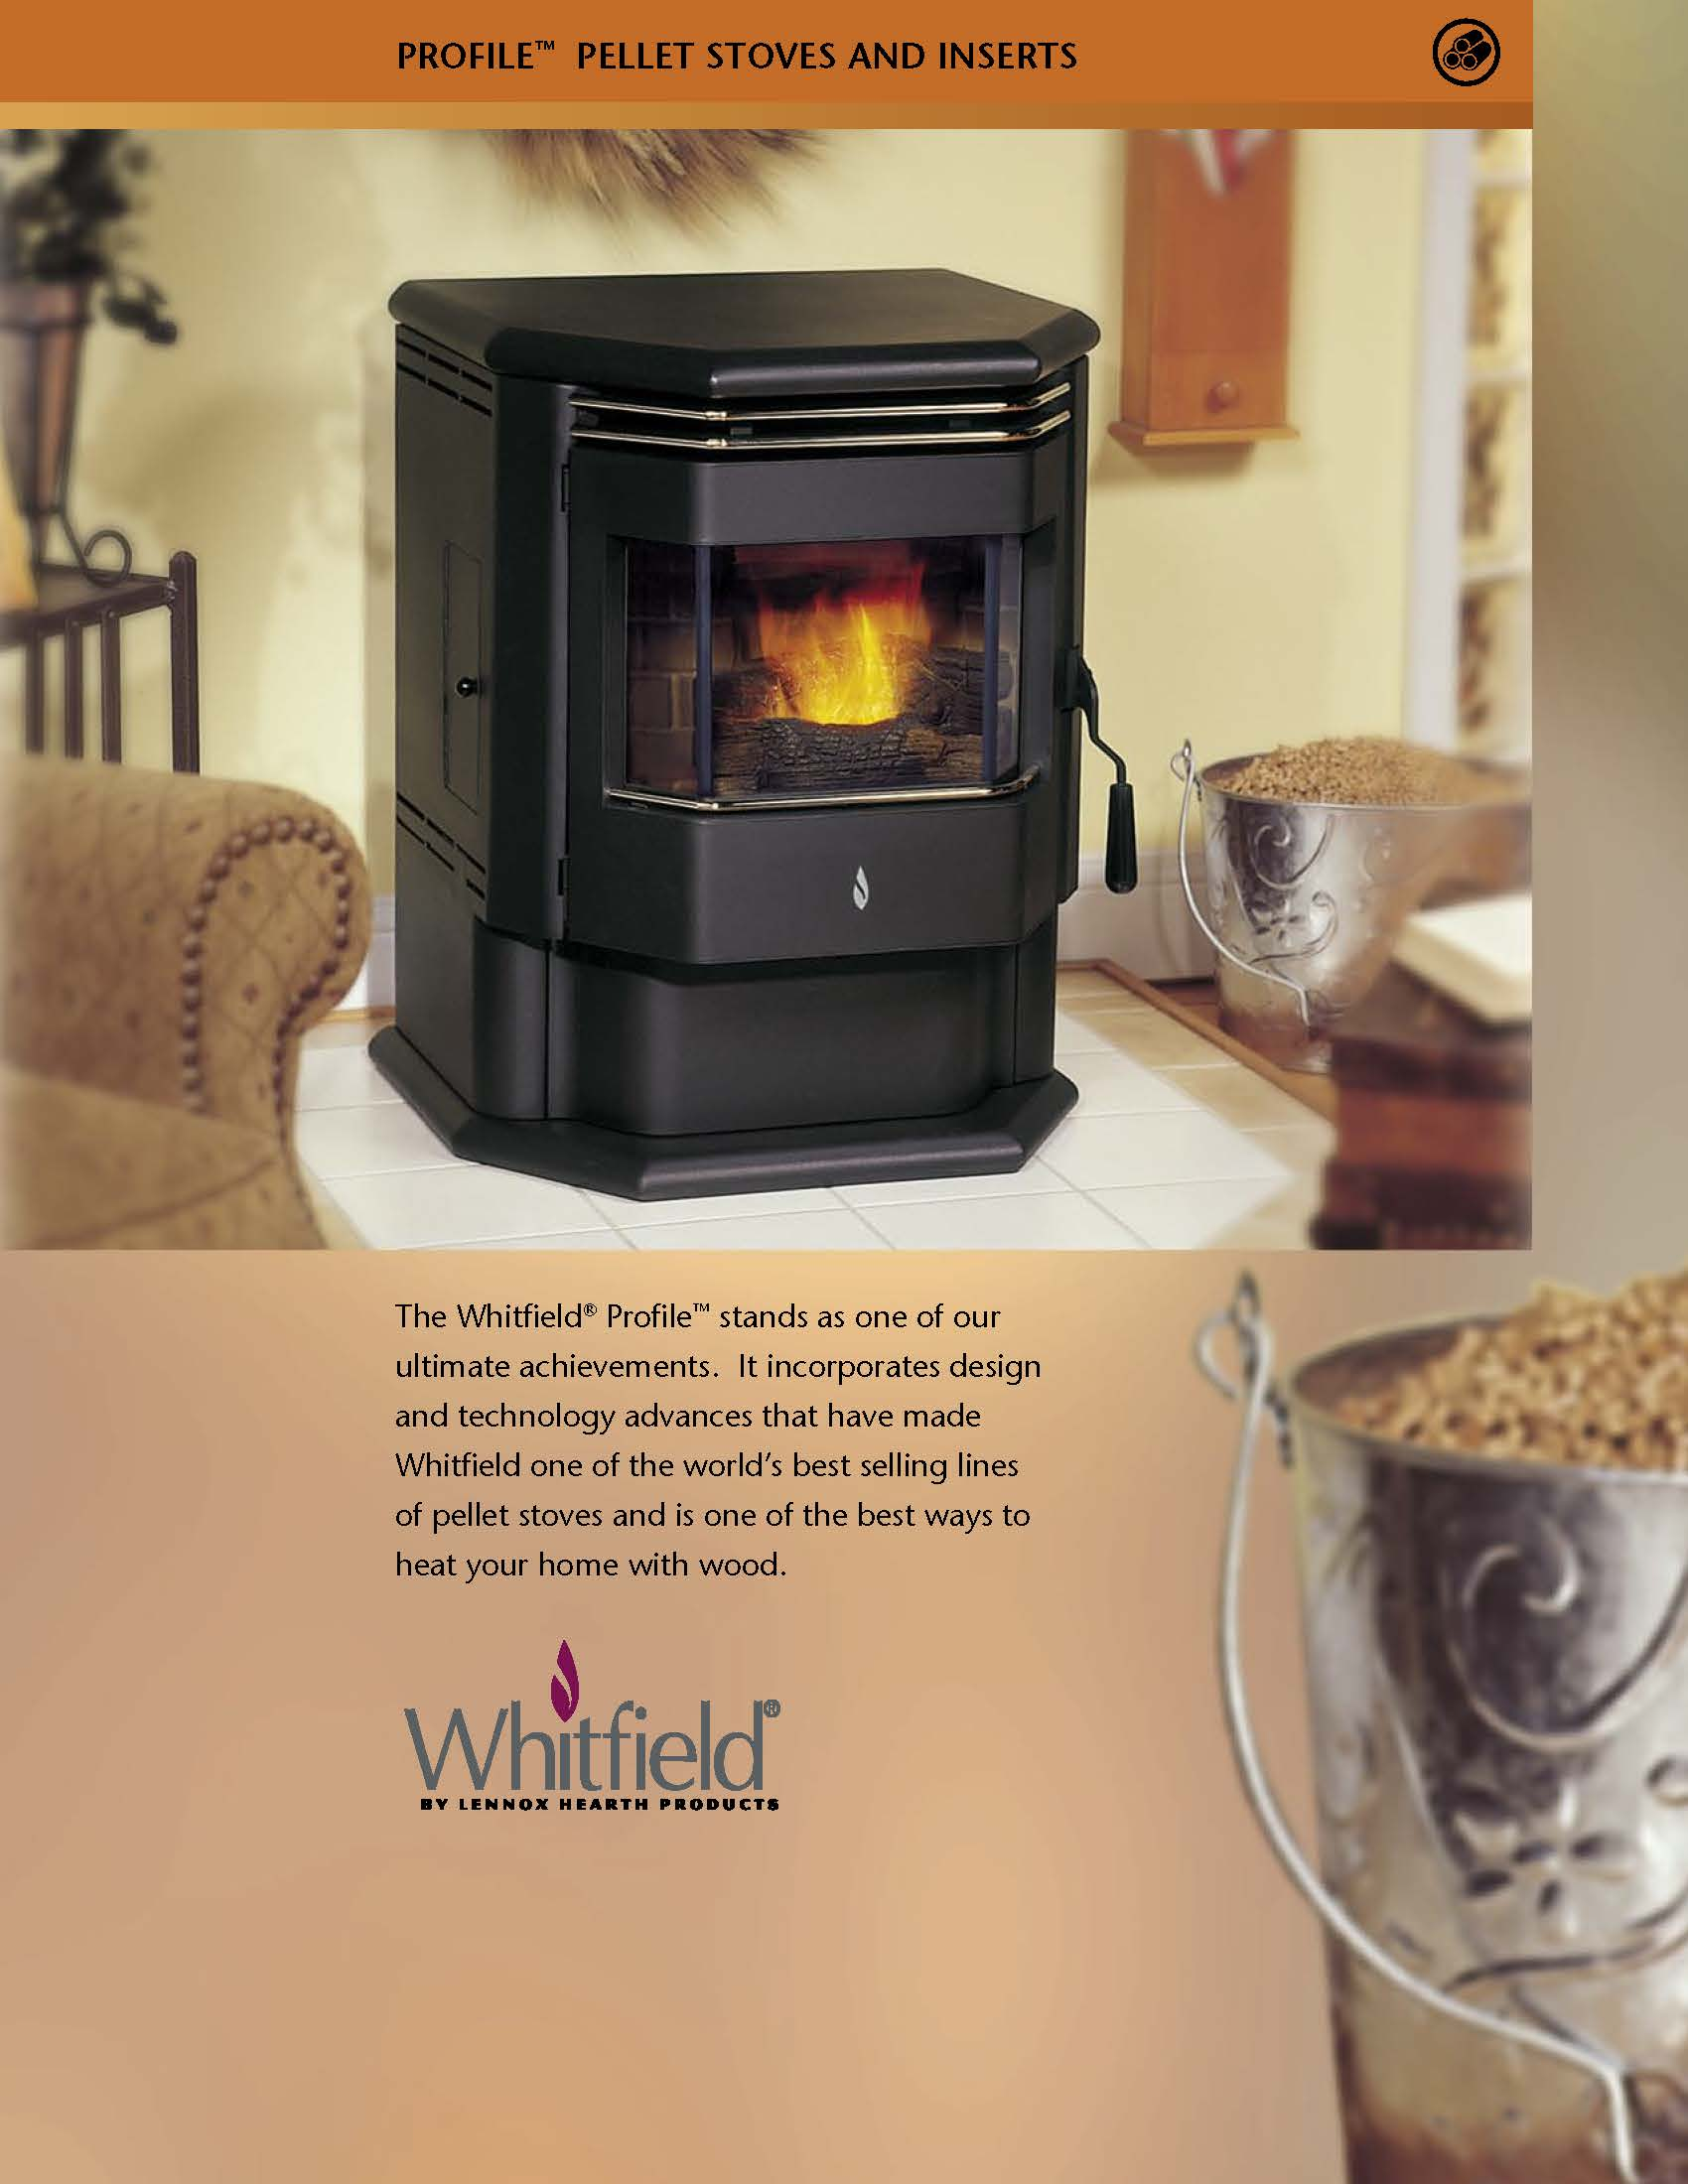 Cool Whitfield Profile 20 30 Pellet Stove Brochure Freestanding Download Free Architecture Designs Scobabritishbridgeorg